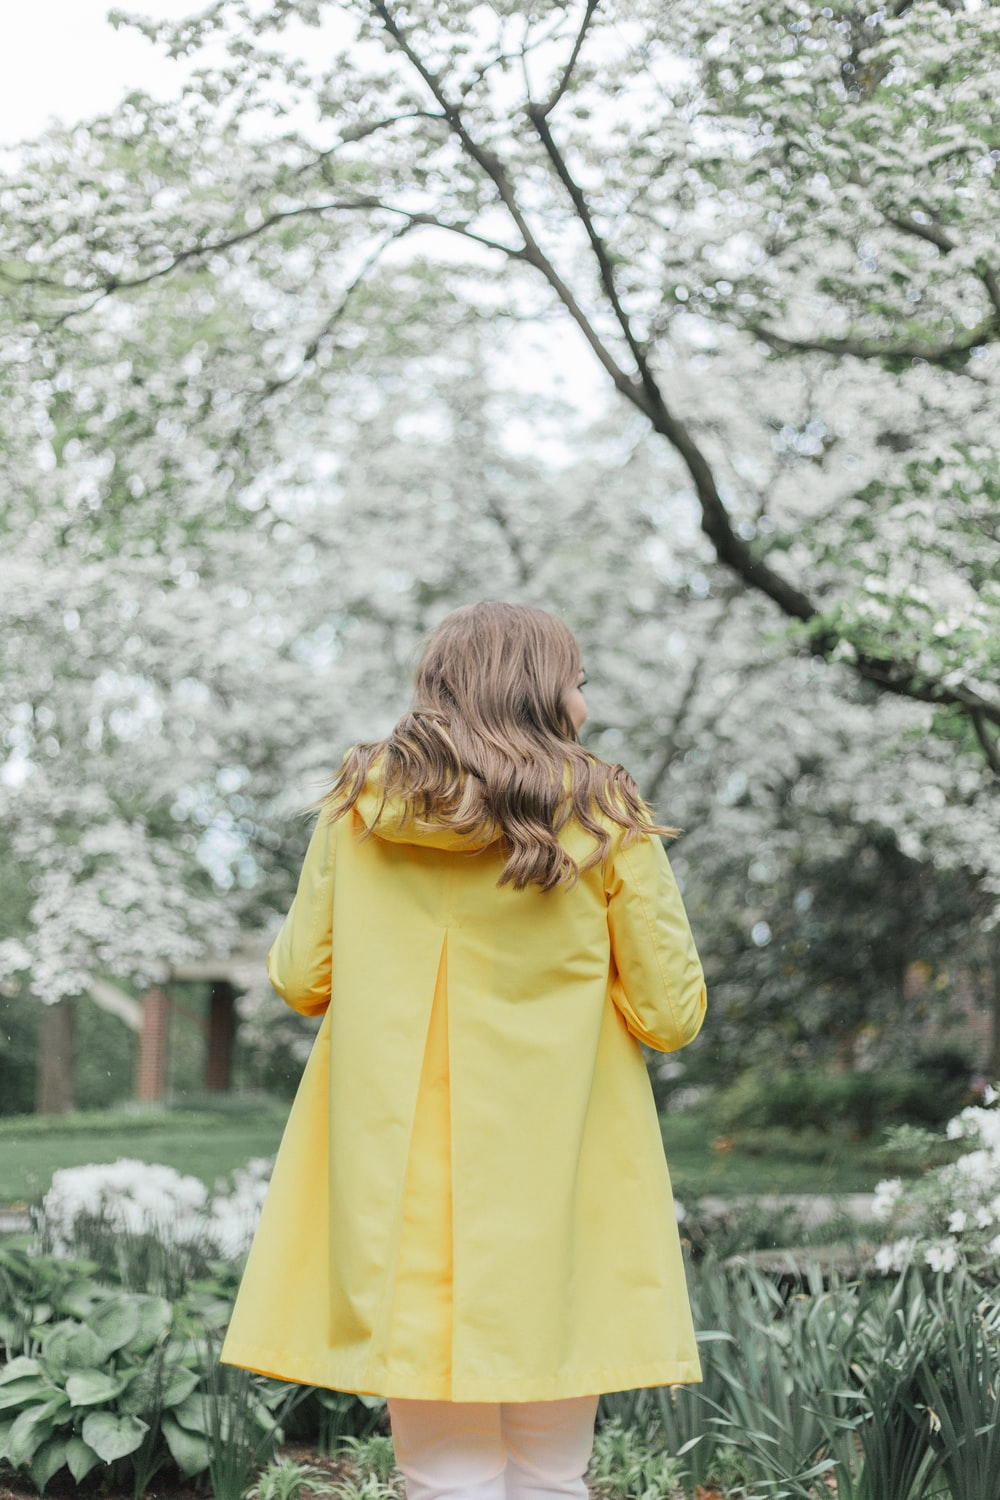 woman in yellow coat standing near trees during daytime